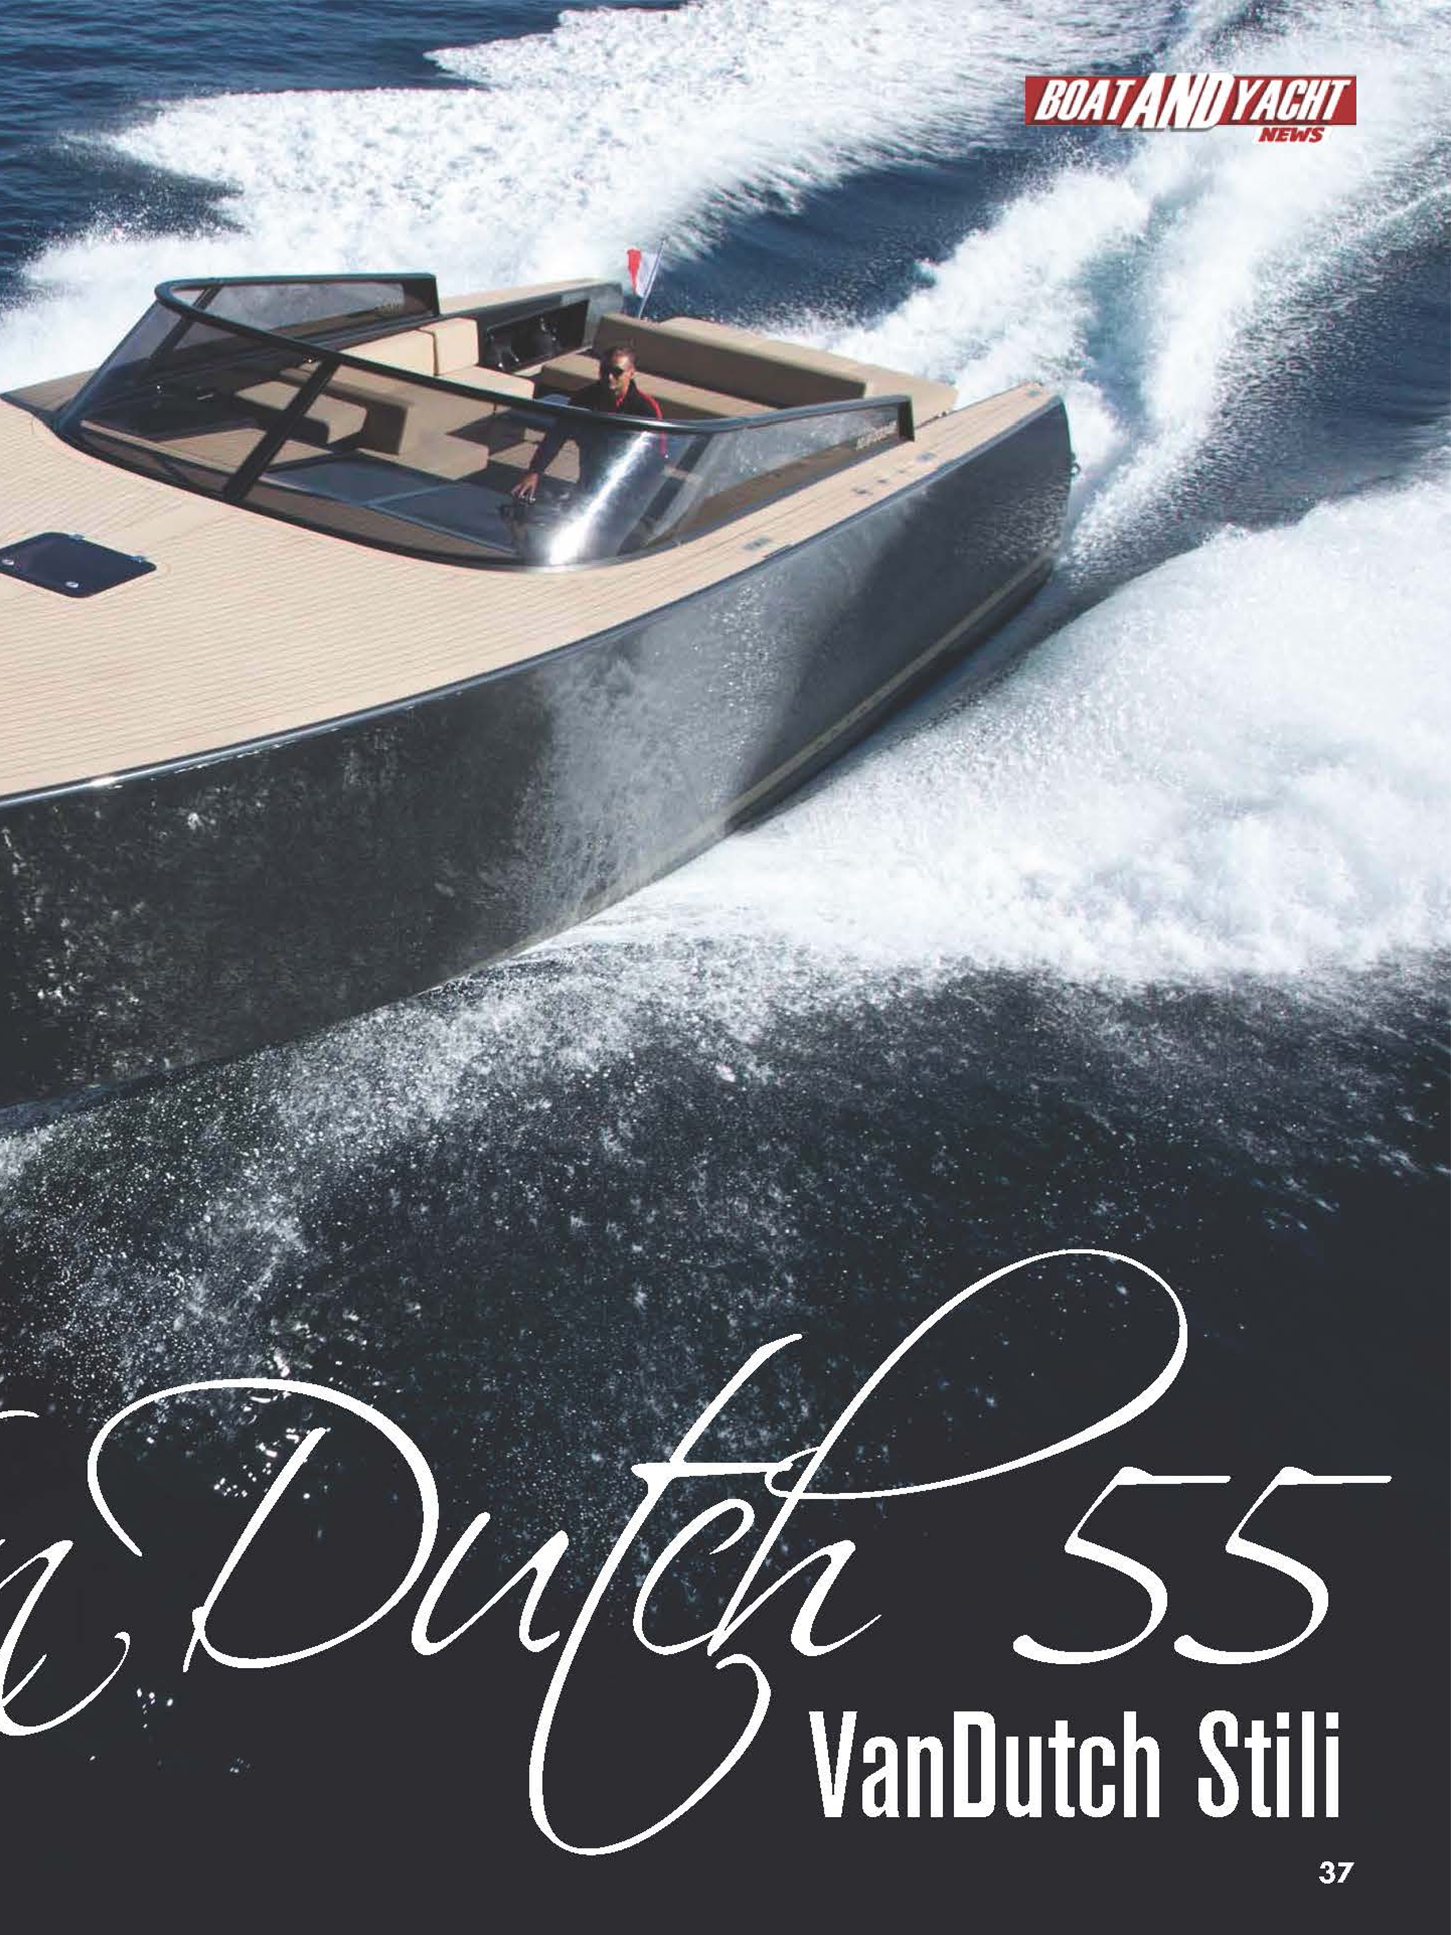 boat-and-yacht-02-225x300